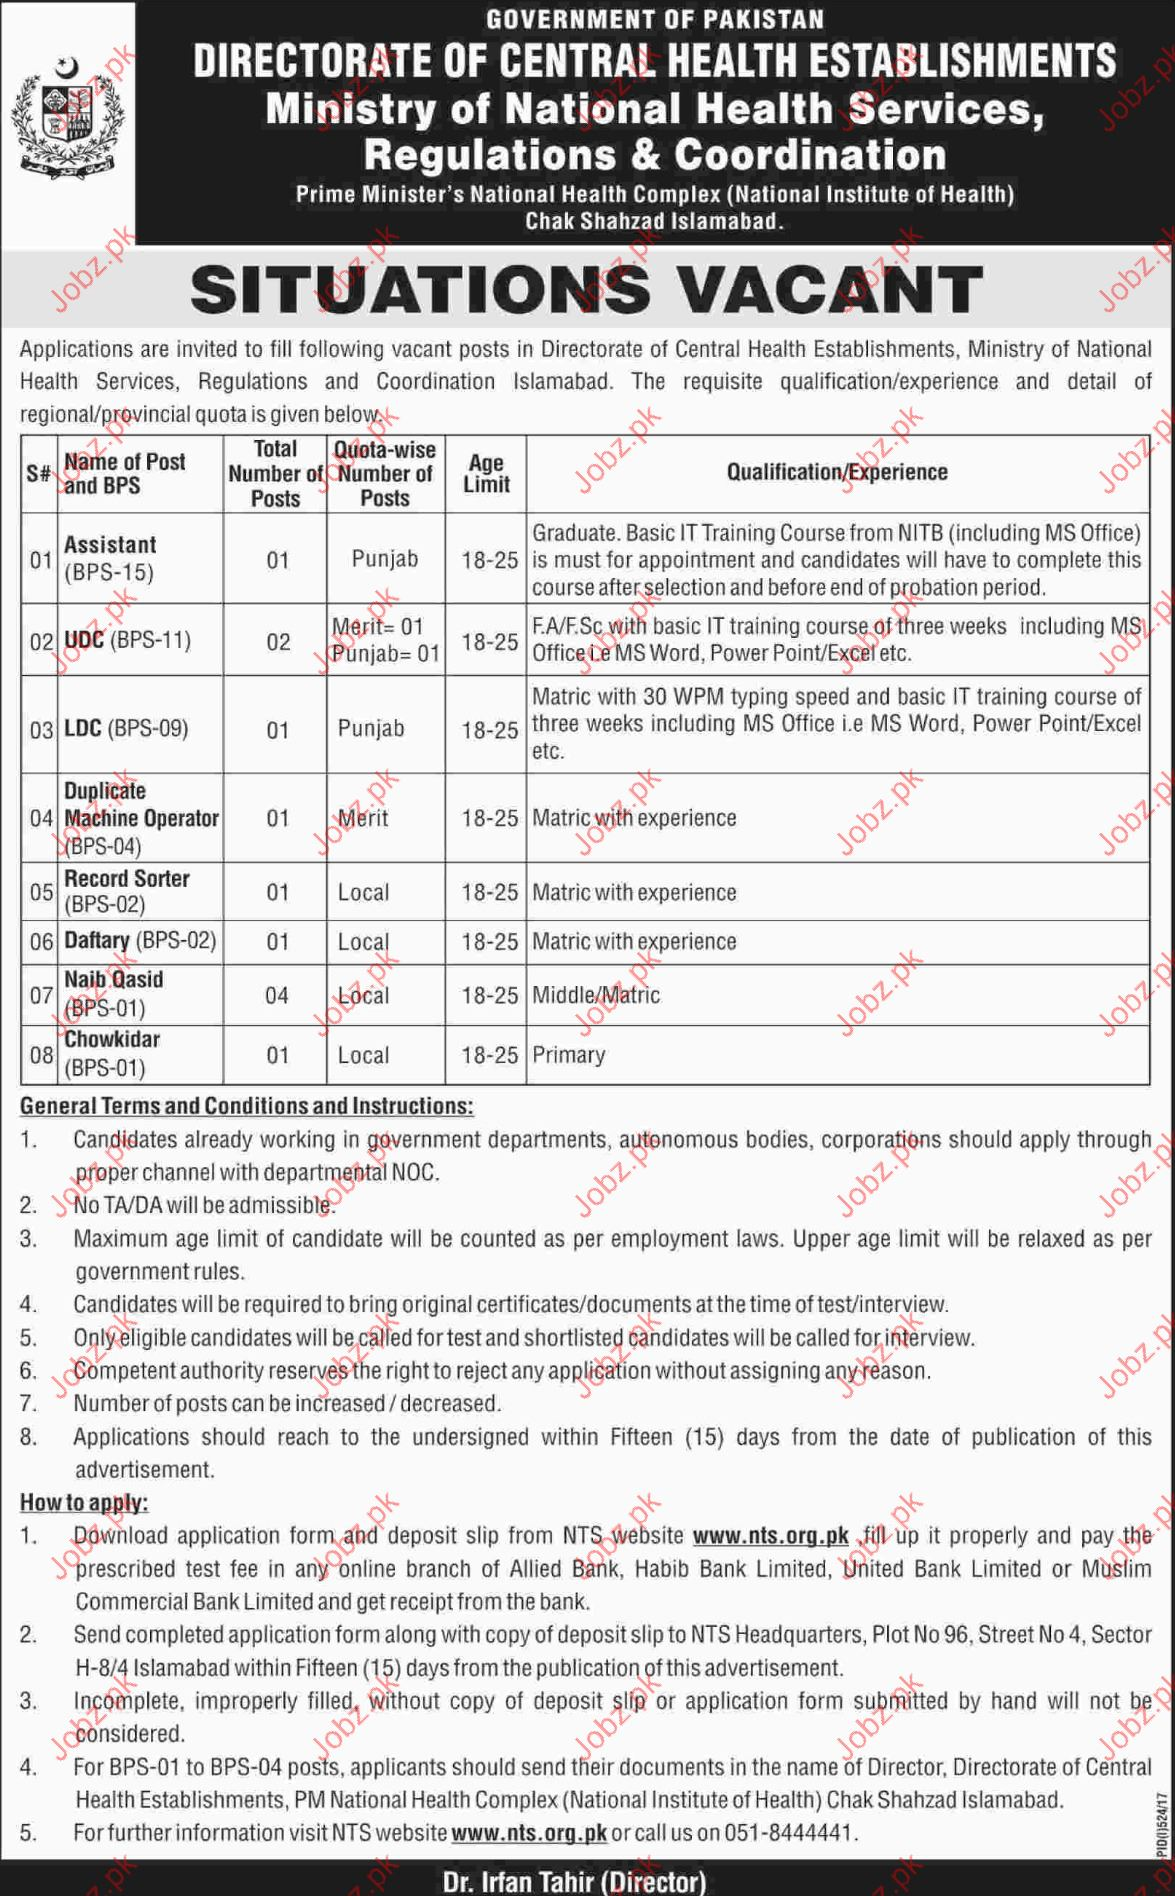 Ministry of National Health Services MNHS Careers